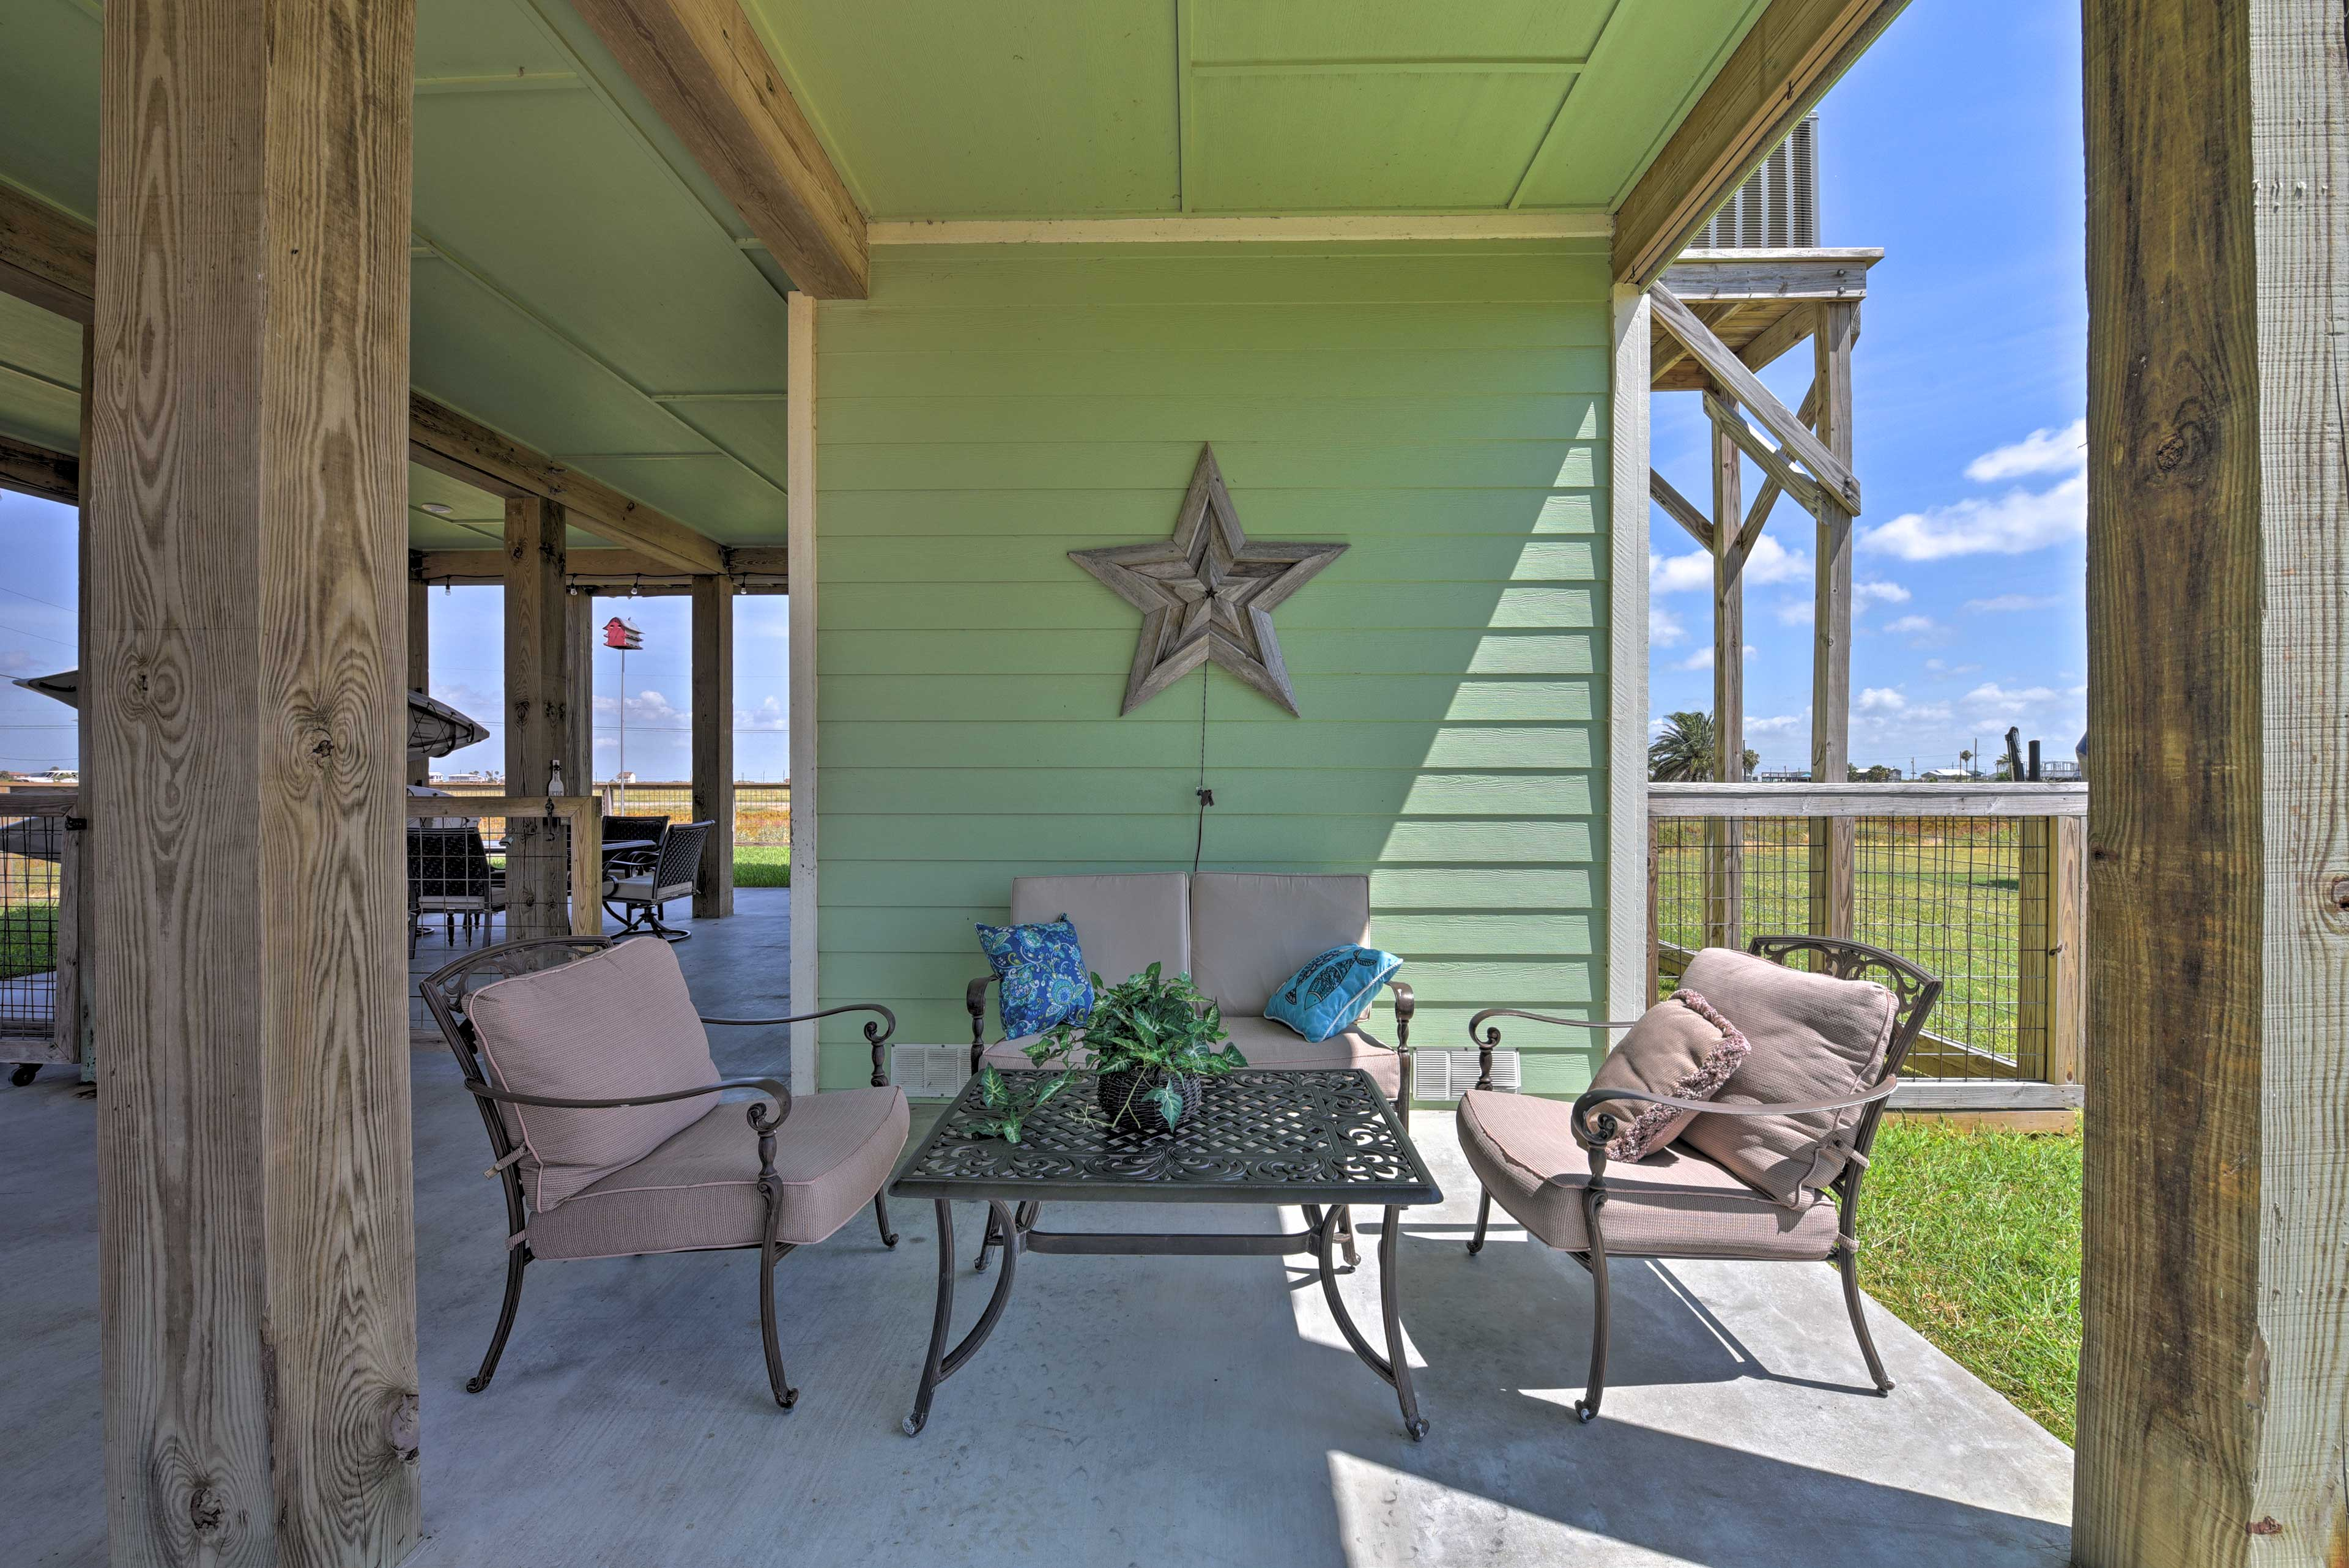 Enjoy time outdoors under this stilted home, a common style of the area.